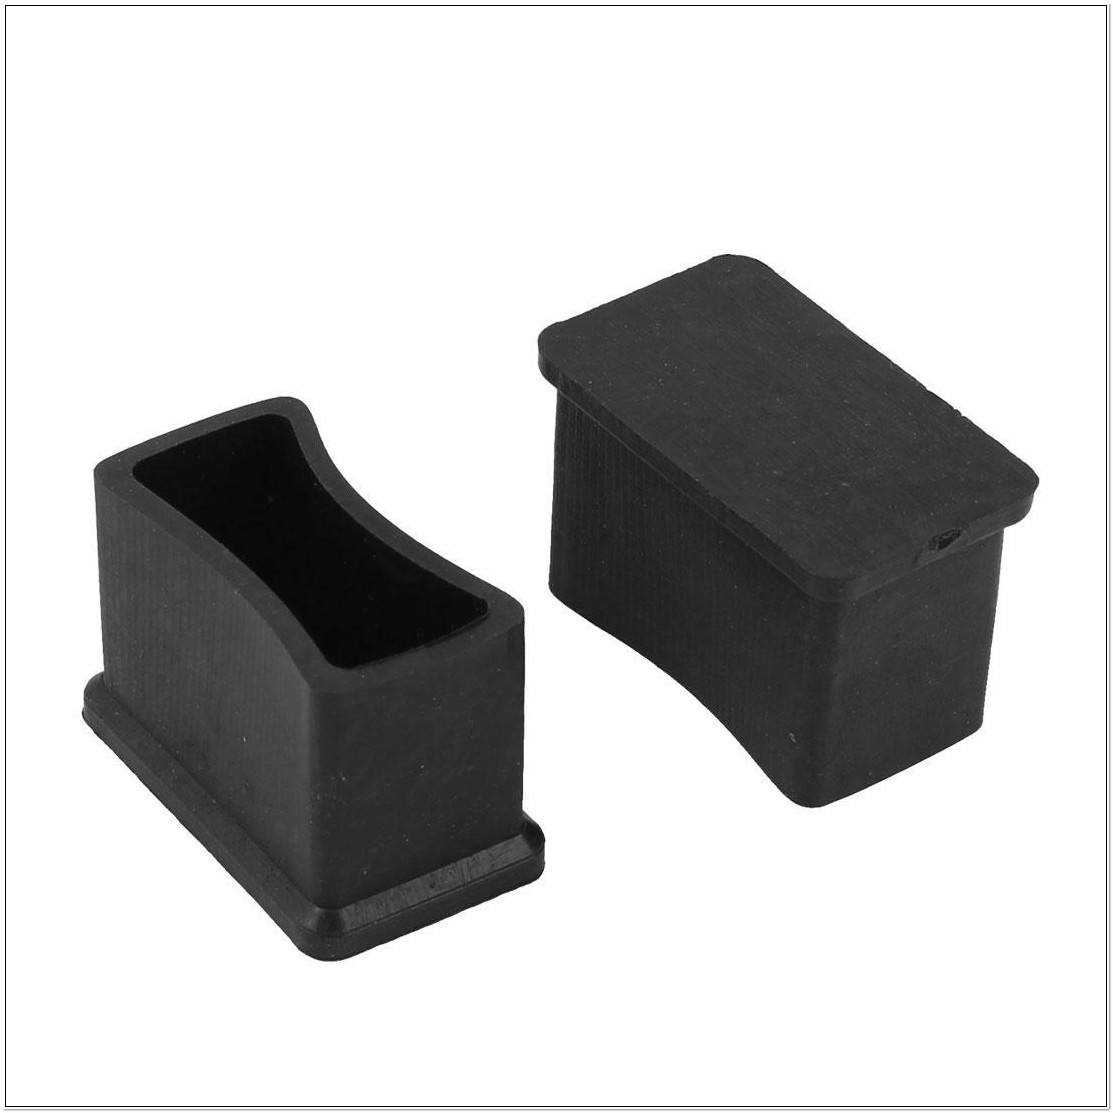 Rectangular Rubber Chair Leg Caps